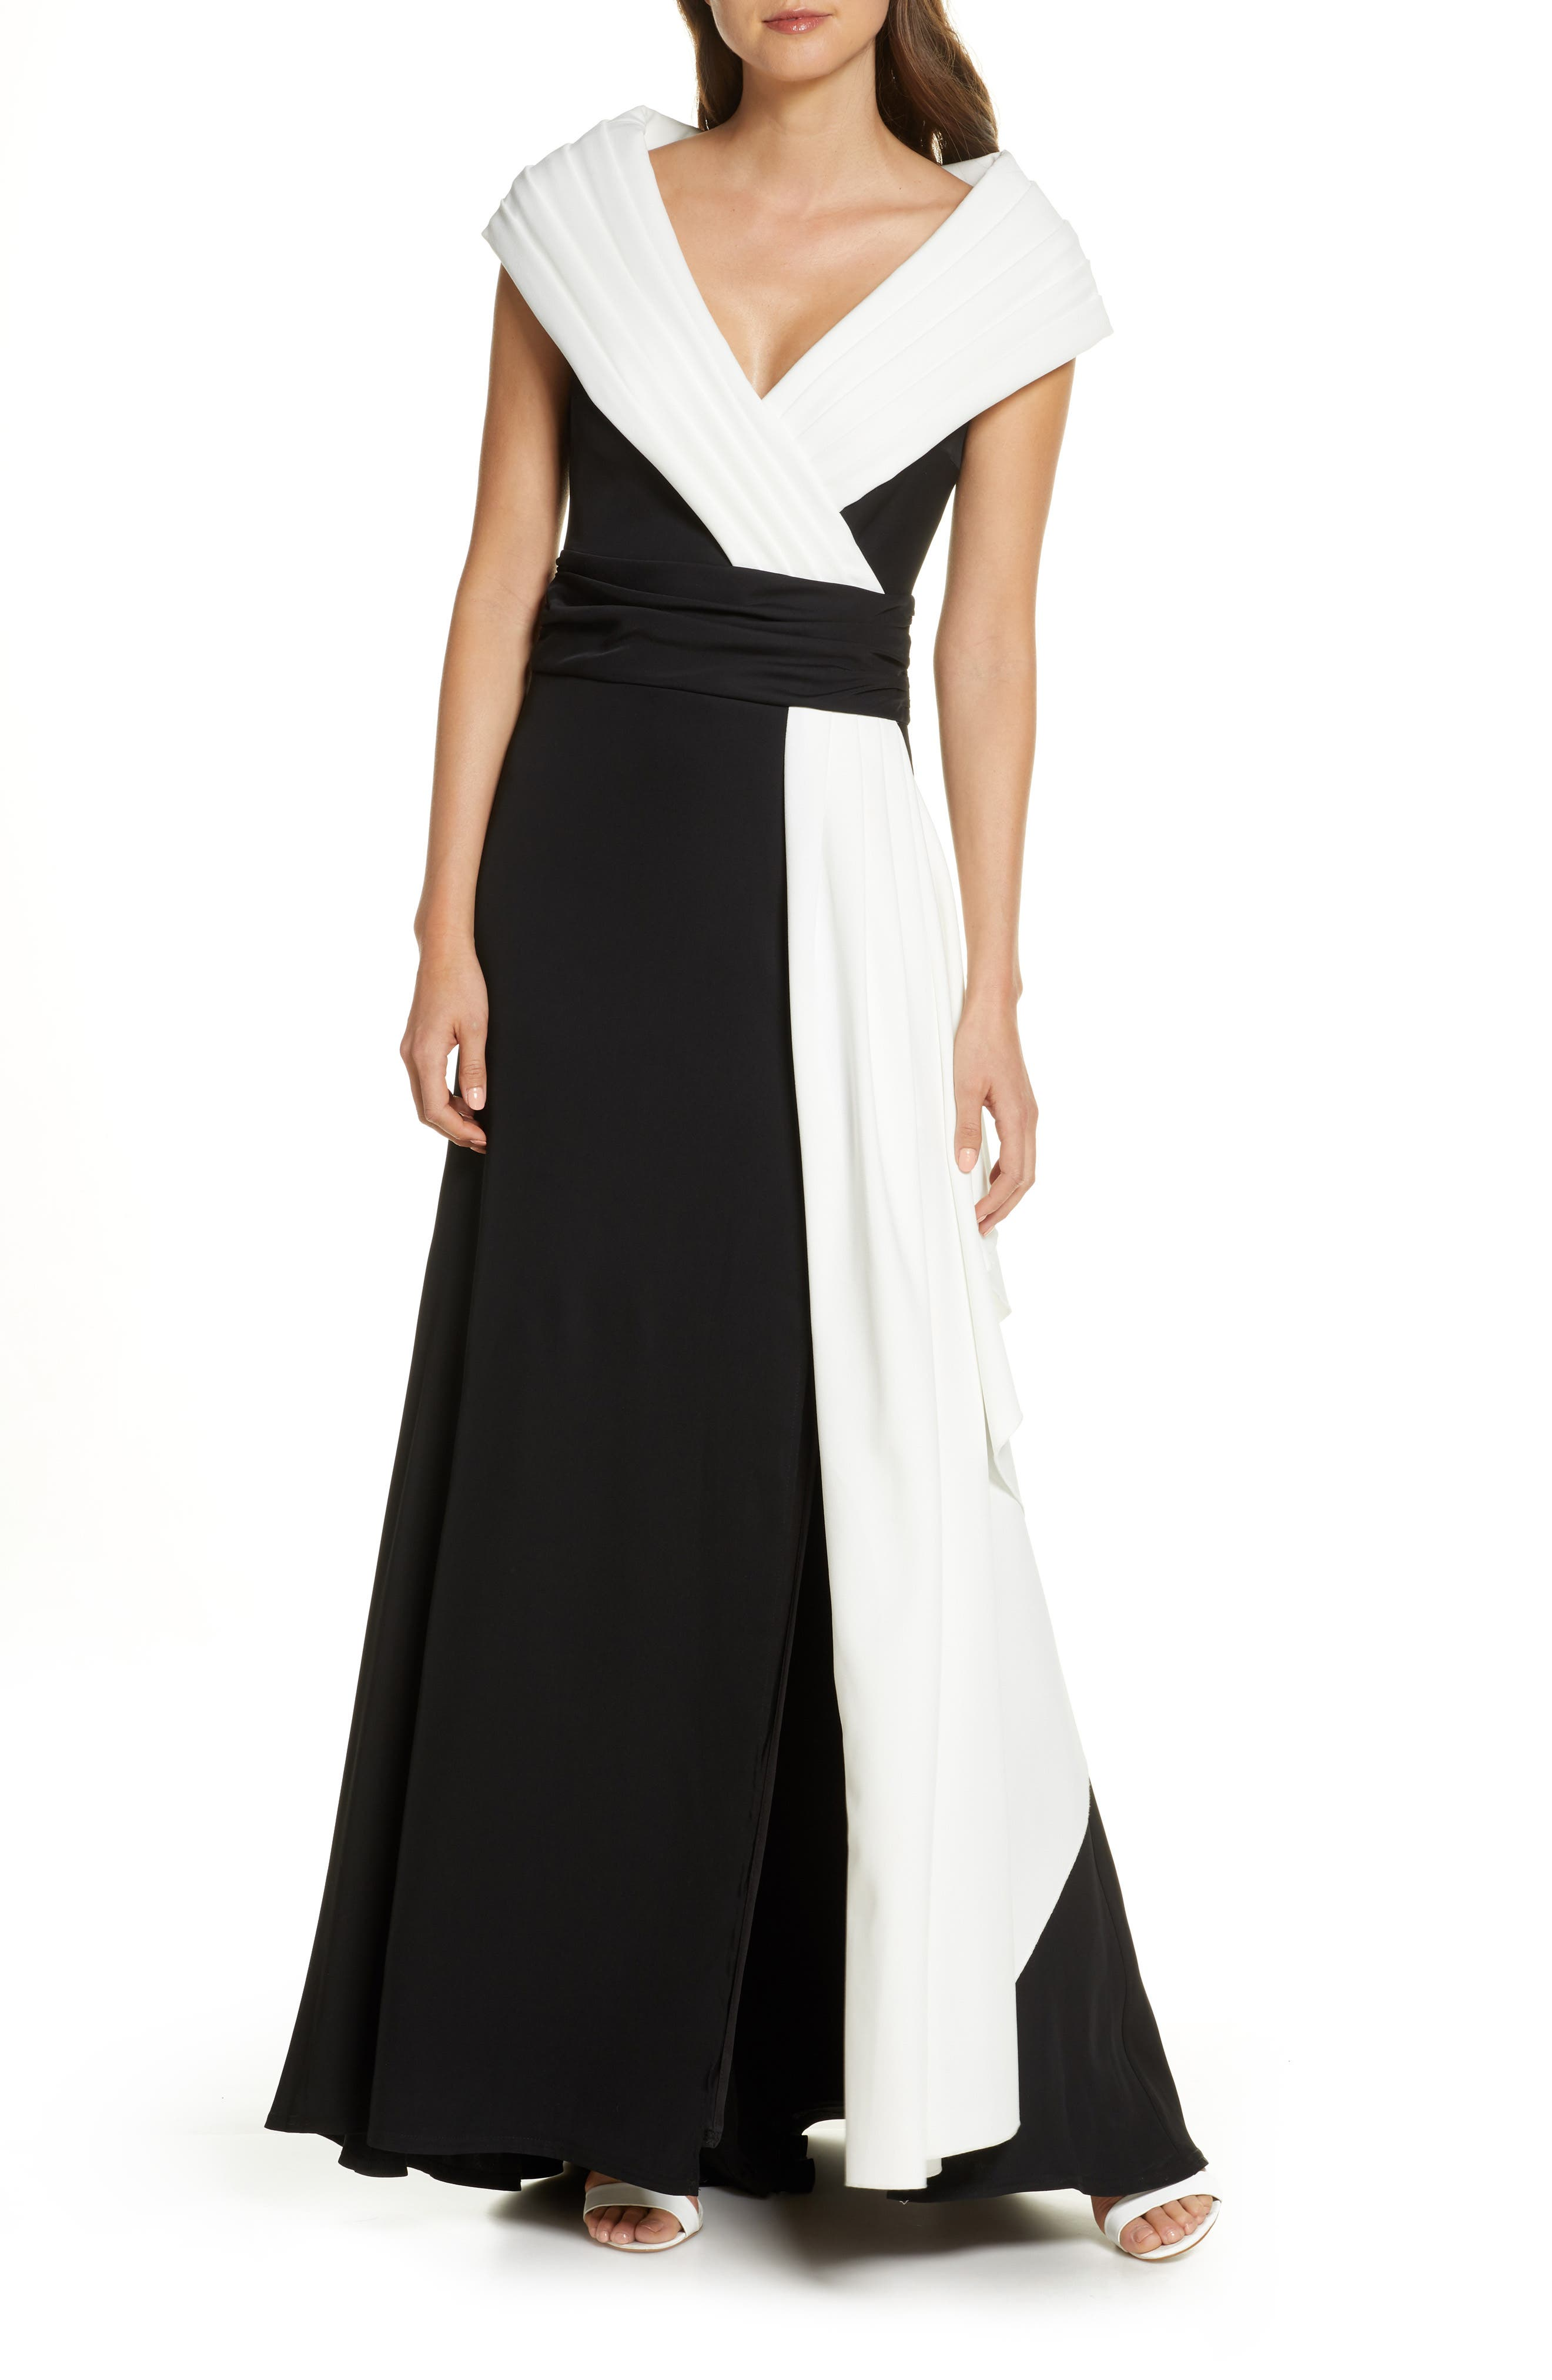 1980s Clothing, Fashion | 80s Style Clothes Womens Tadashi Shoji Portrait Collar Crepe Gown $468.00 AT vintagedancer.com